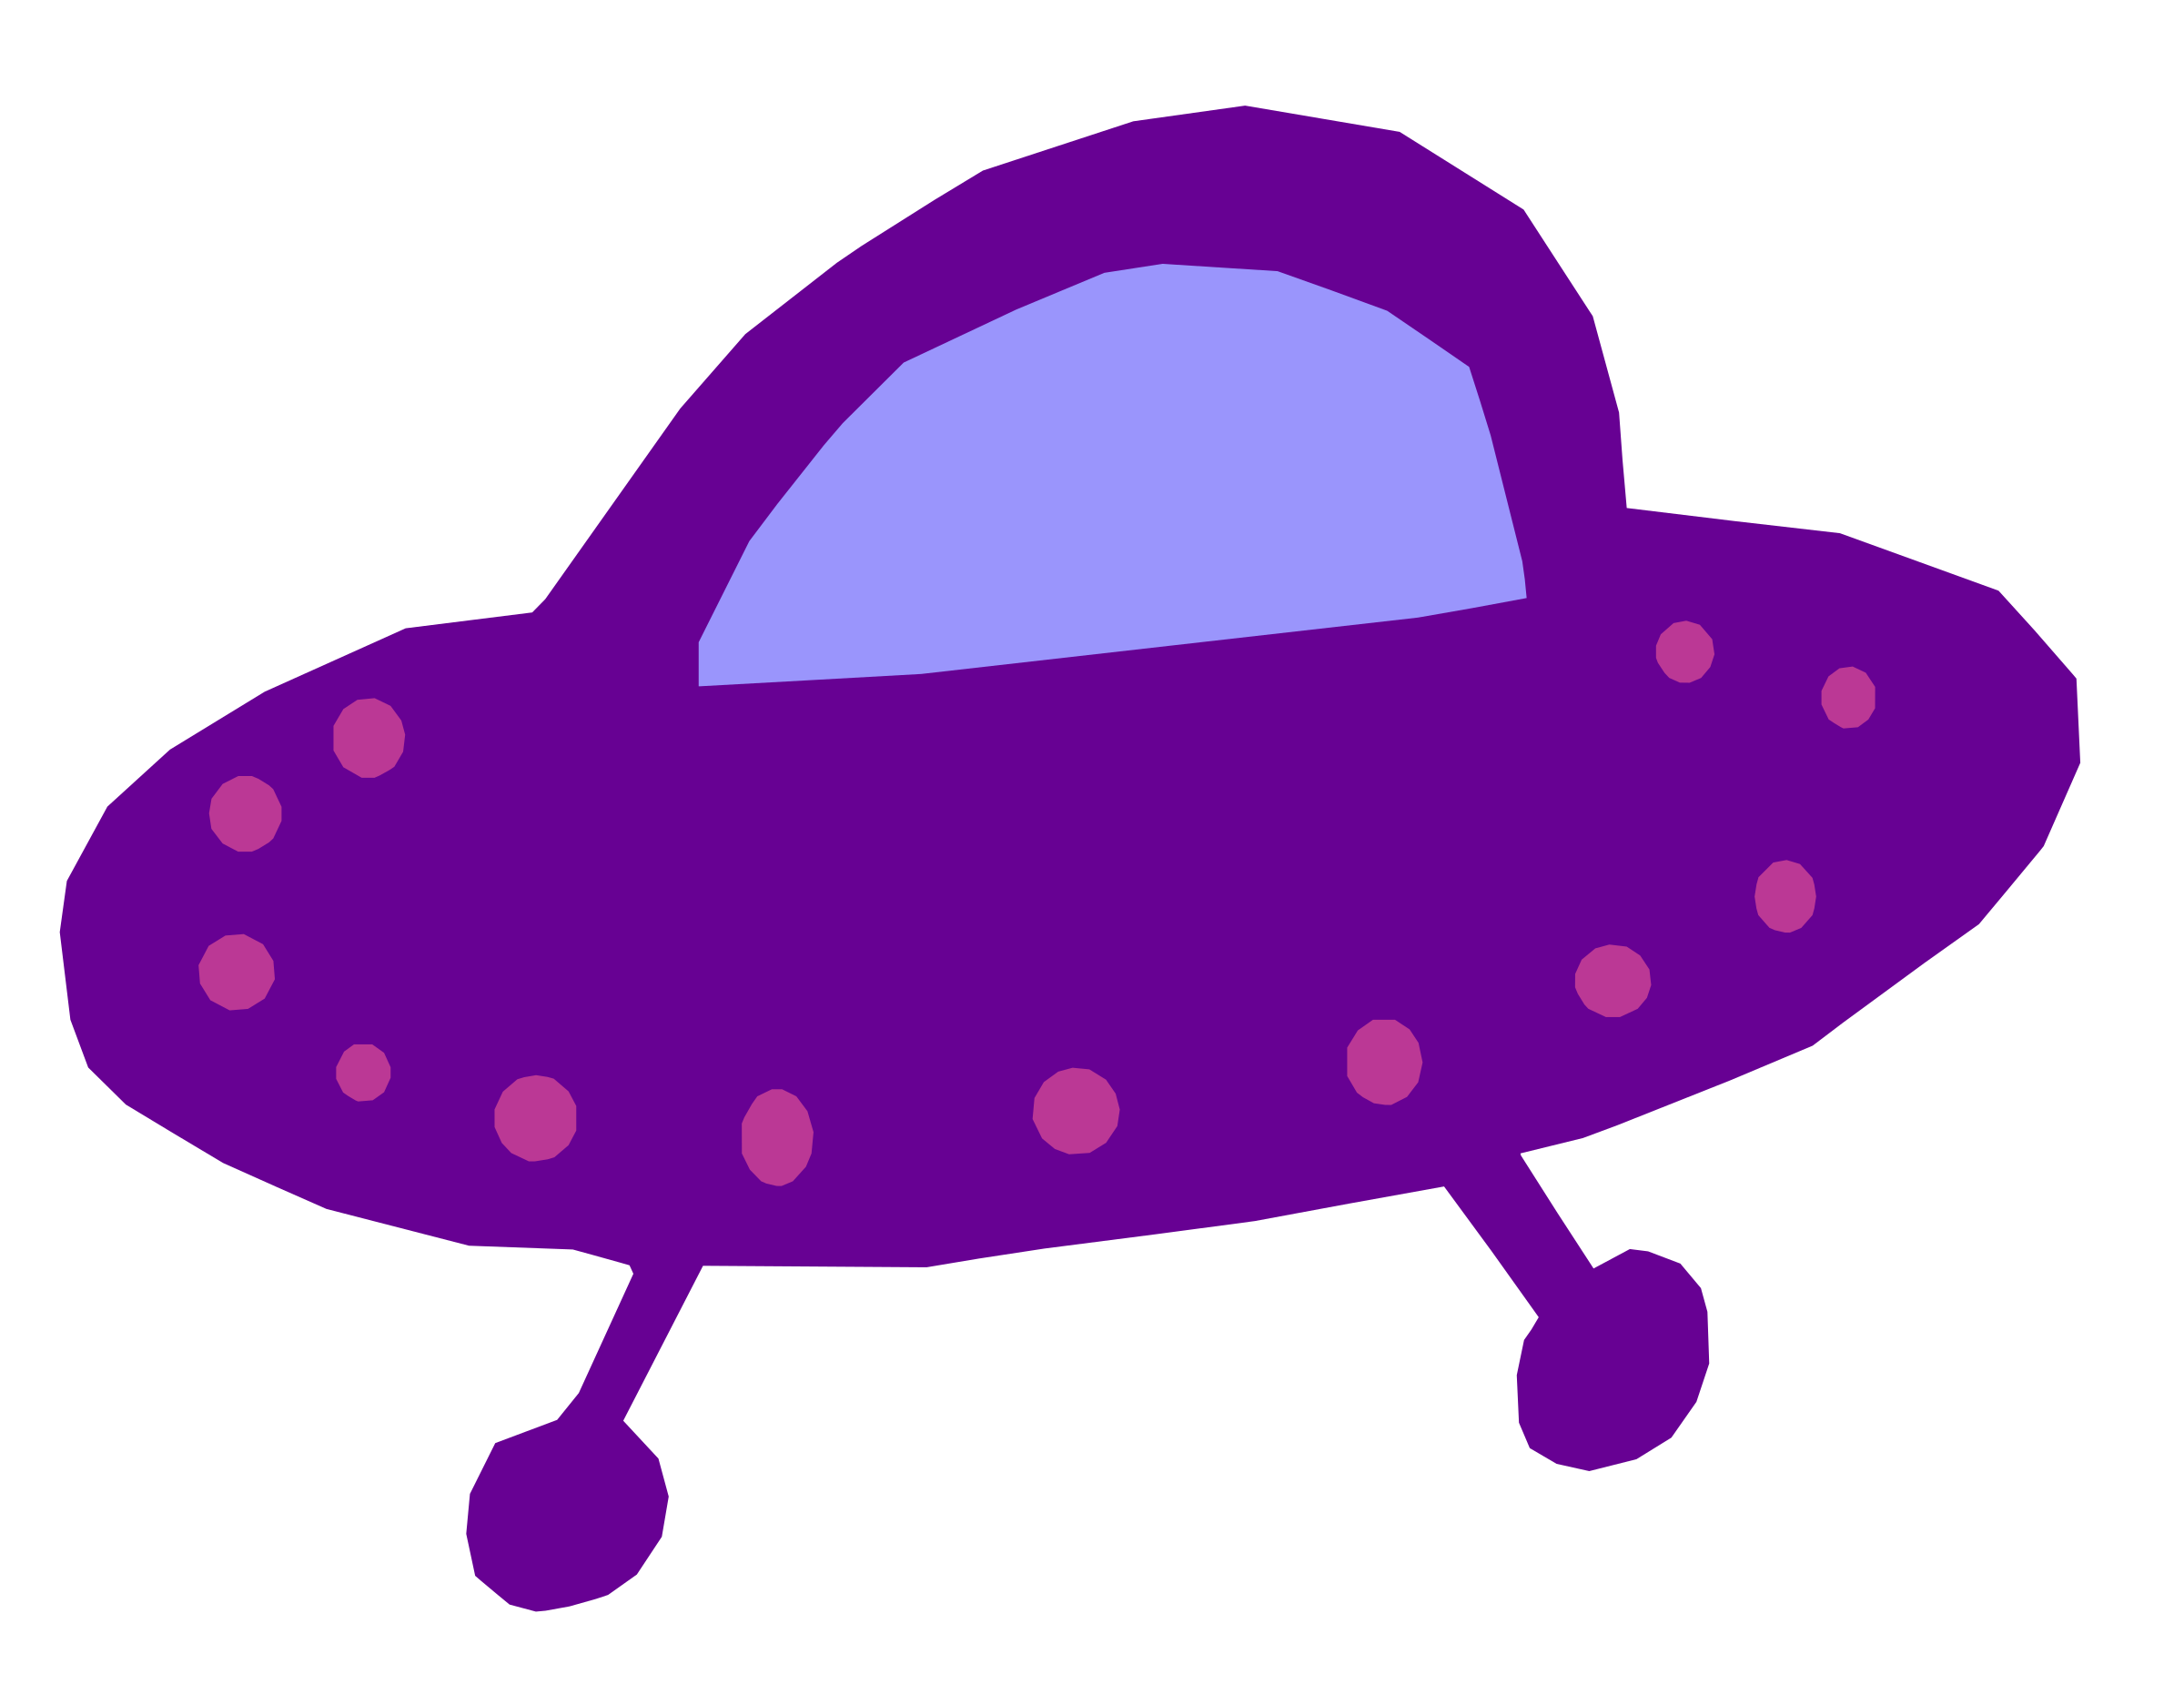 Vector ufo colourful. Purple refixed icons png